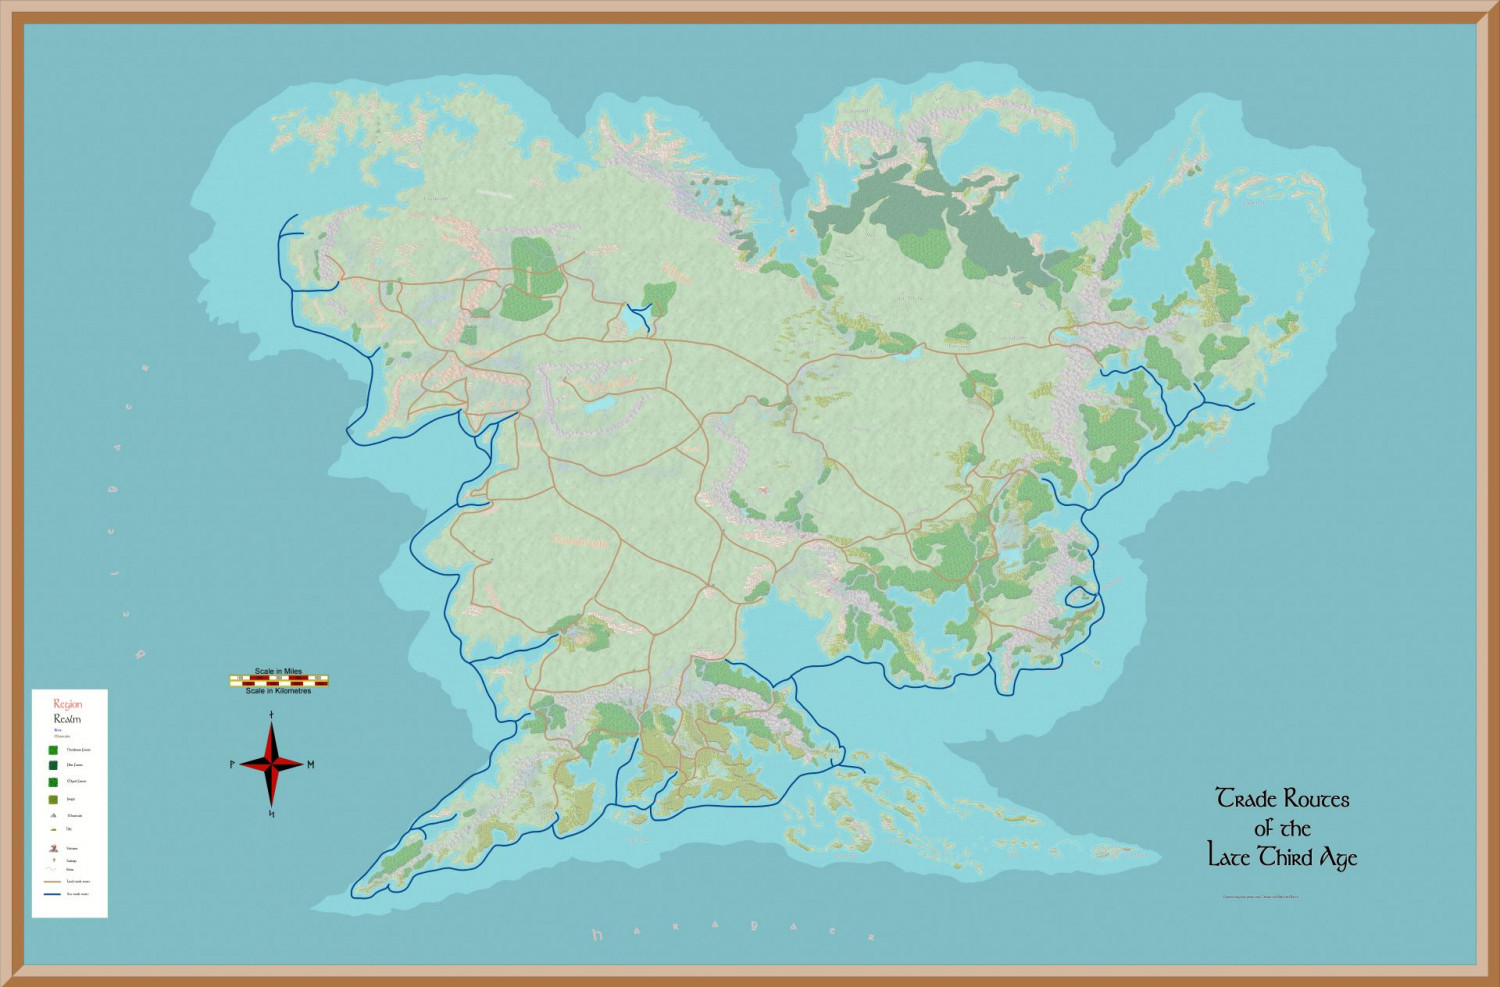 ICE M-E Trade Routes Endor Continent Map (Late Third Age) V1.00resized.JPG